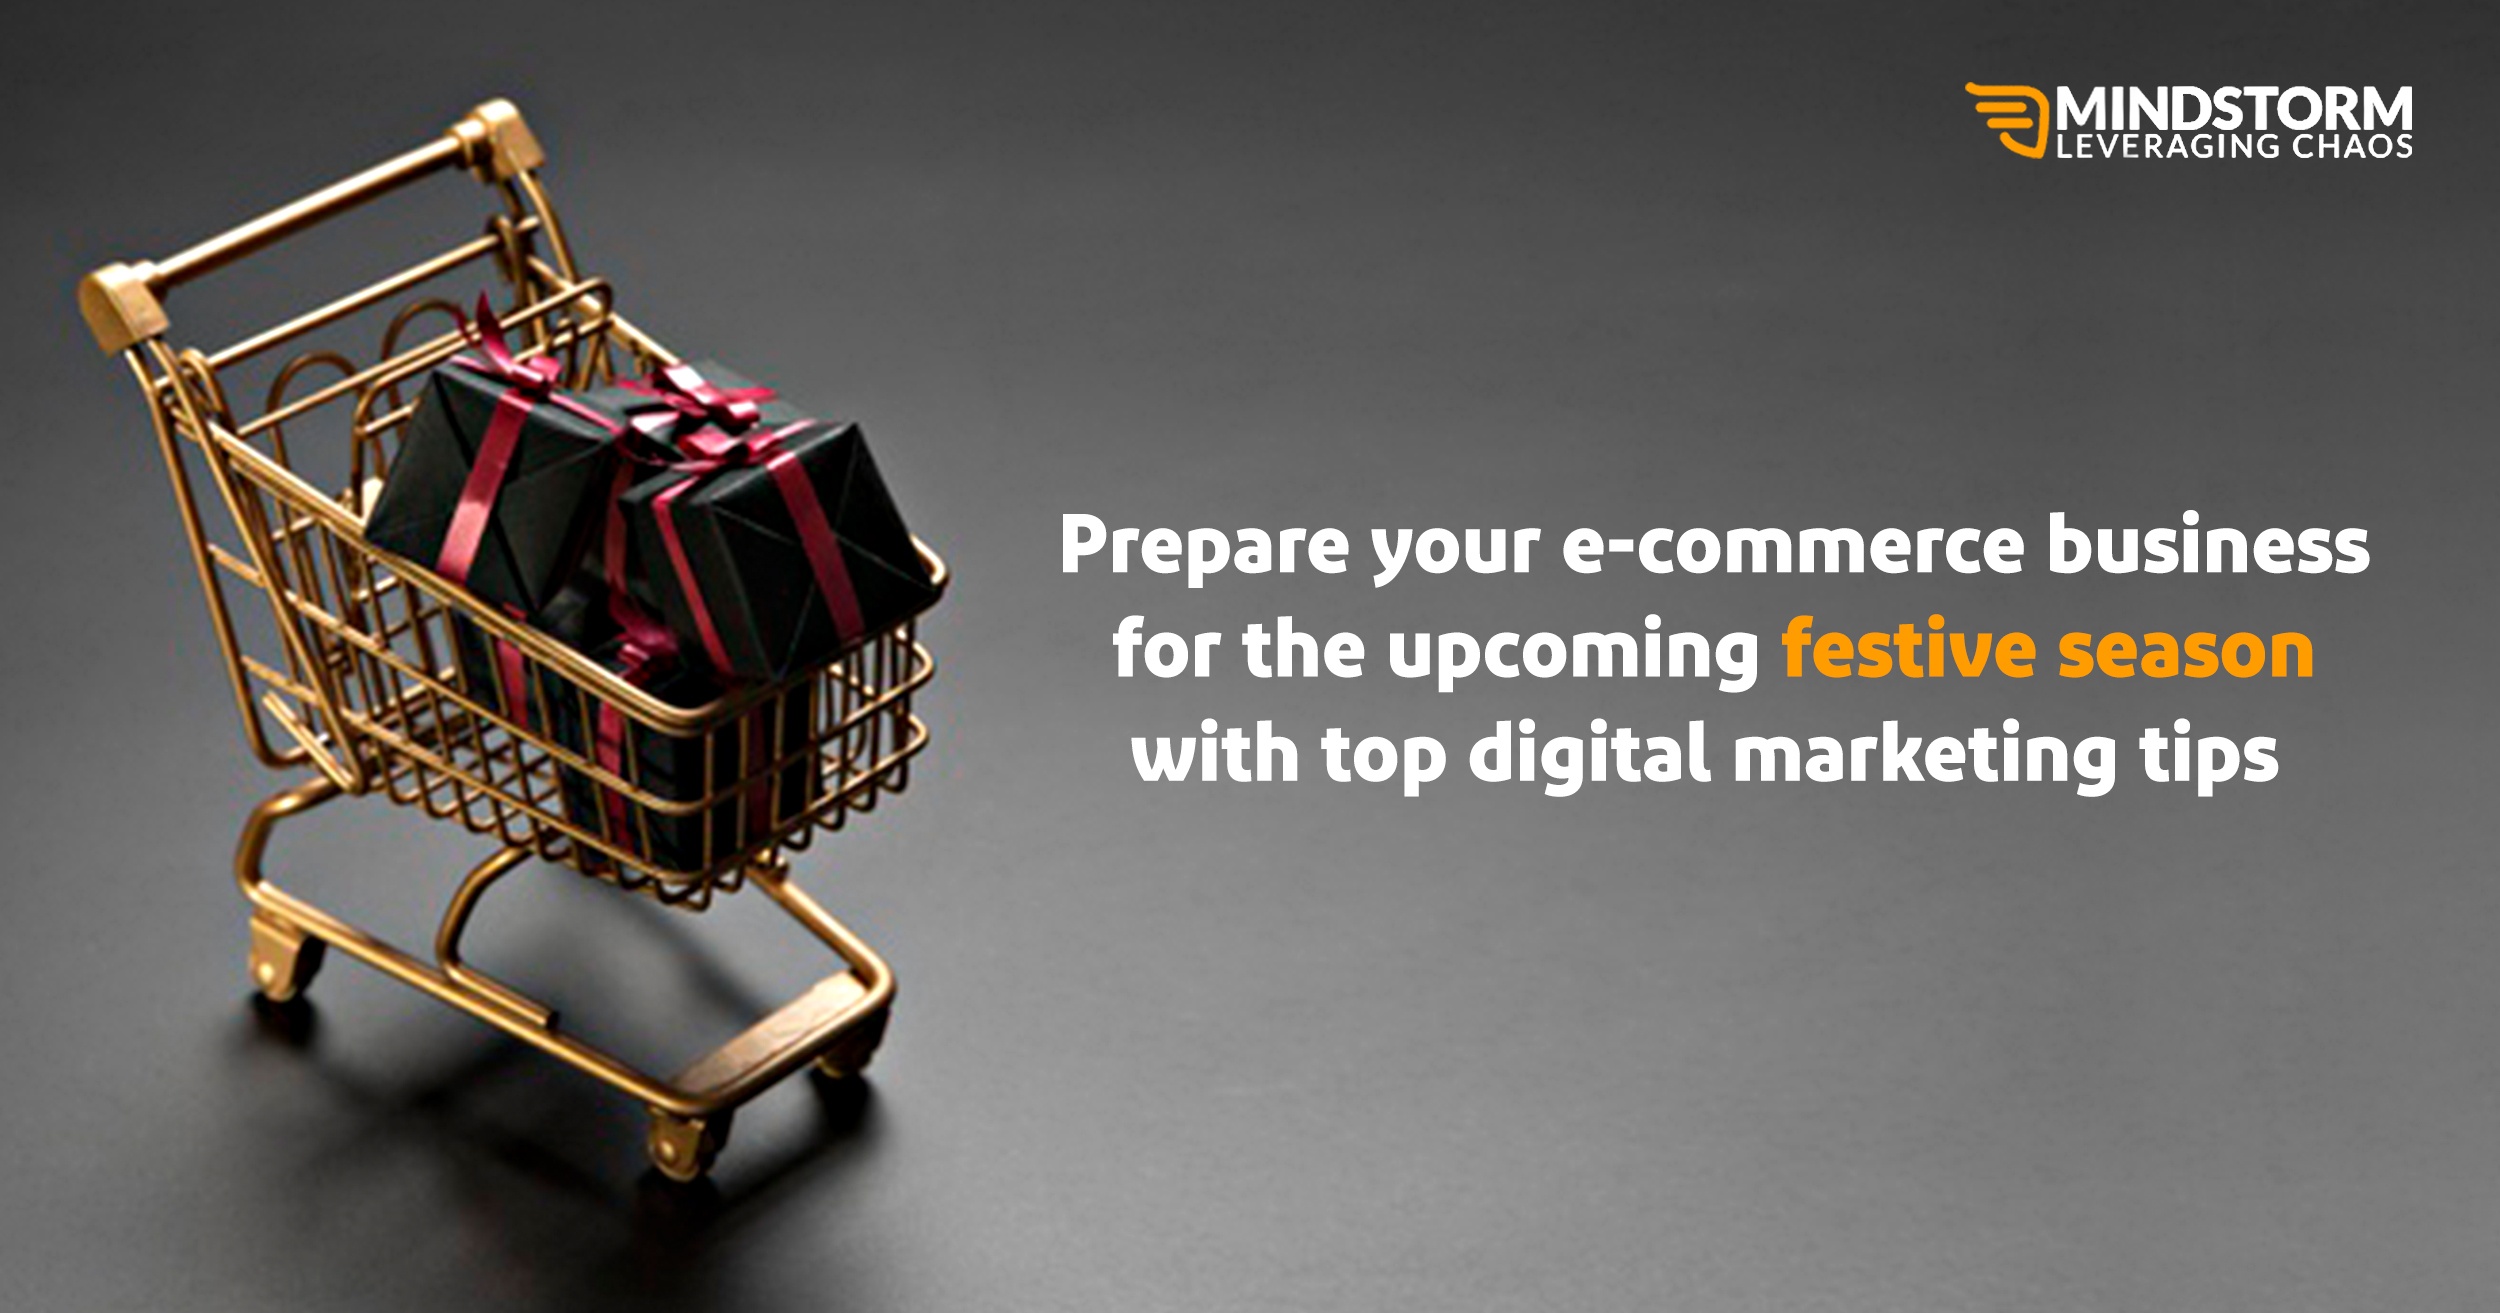 Prepare Your E-Commerce Business for the upcoming Festive Season with Top Digital Marketing Tips